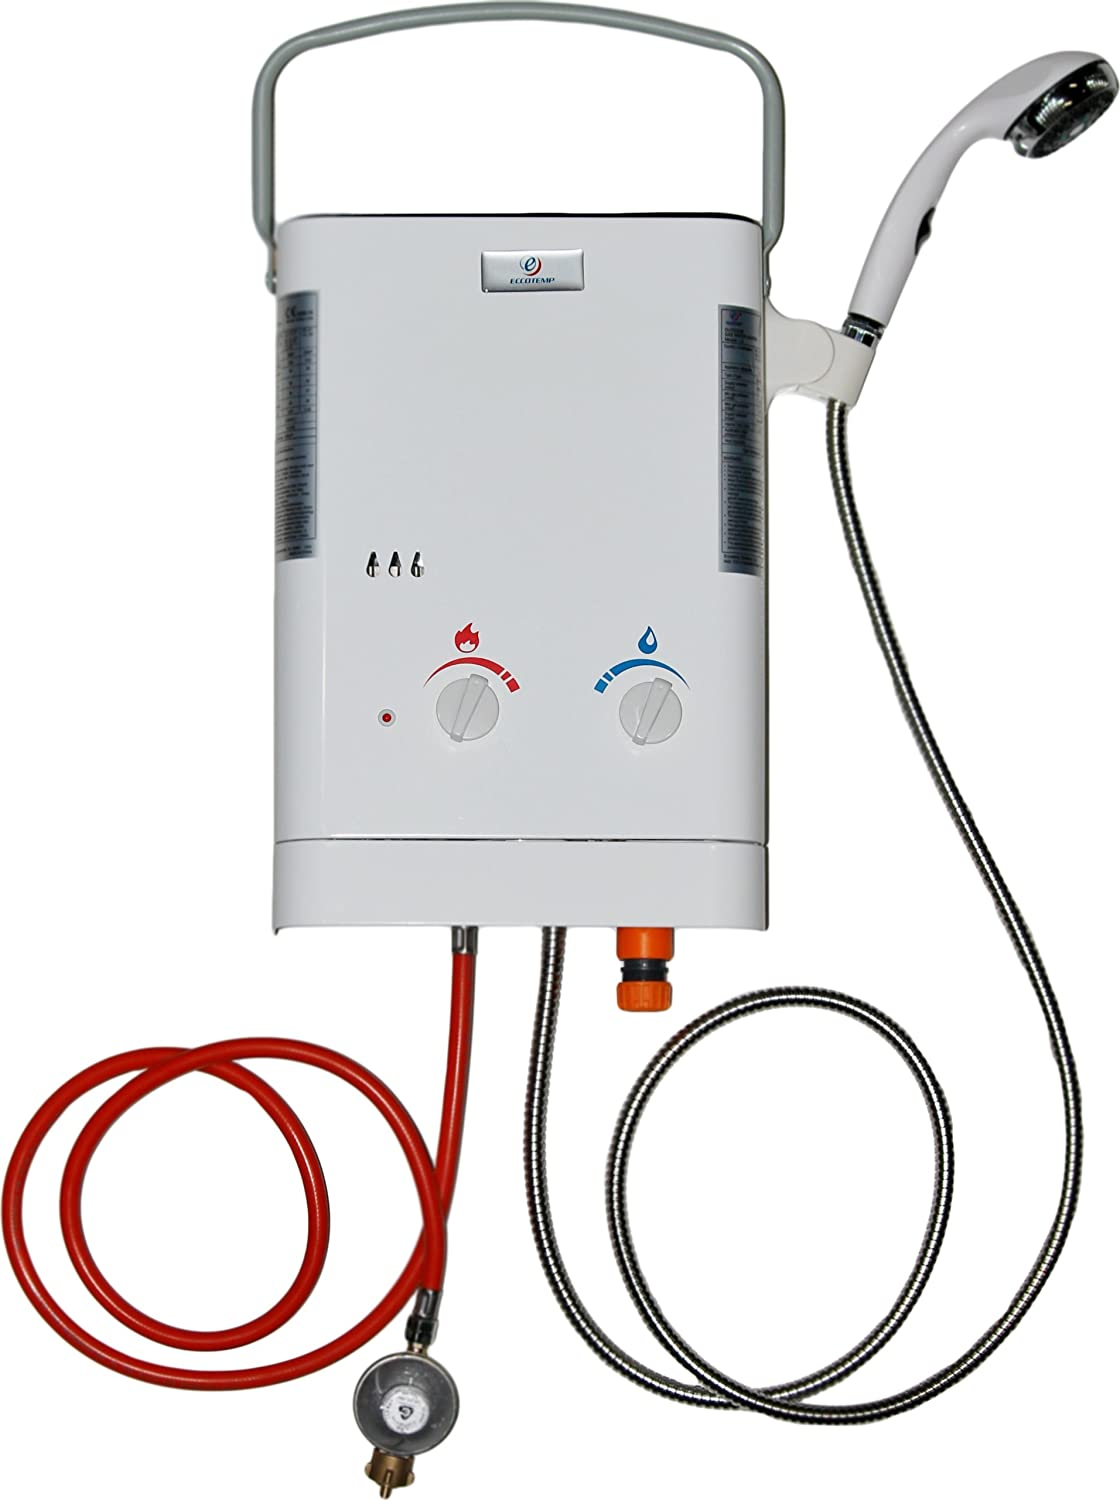 Battery Operated Water Heater Eccotemp Eccl537en Ce L5 Portable Tankless Water Heater White